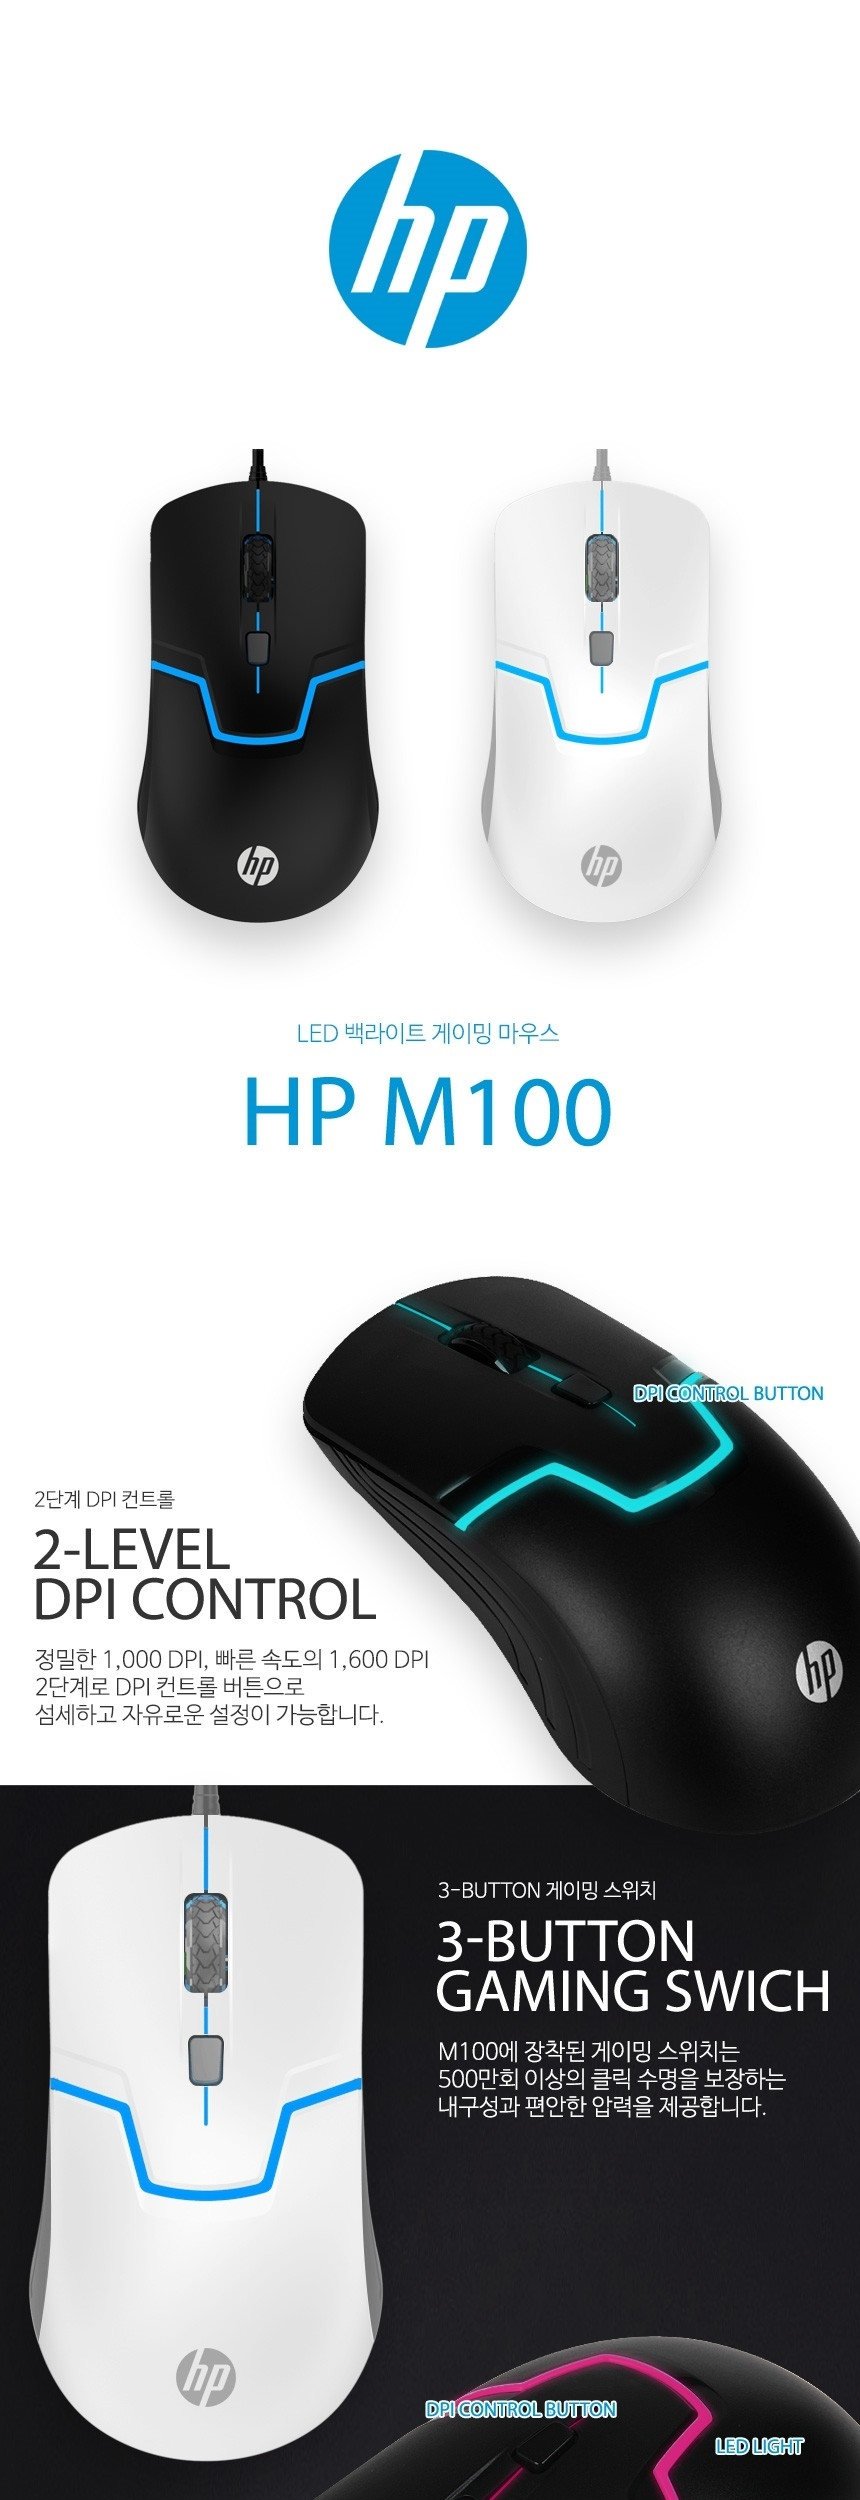 G Hp M100 Gaming Mouse